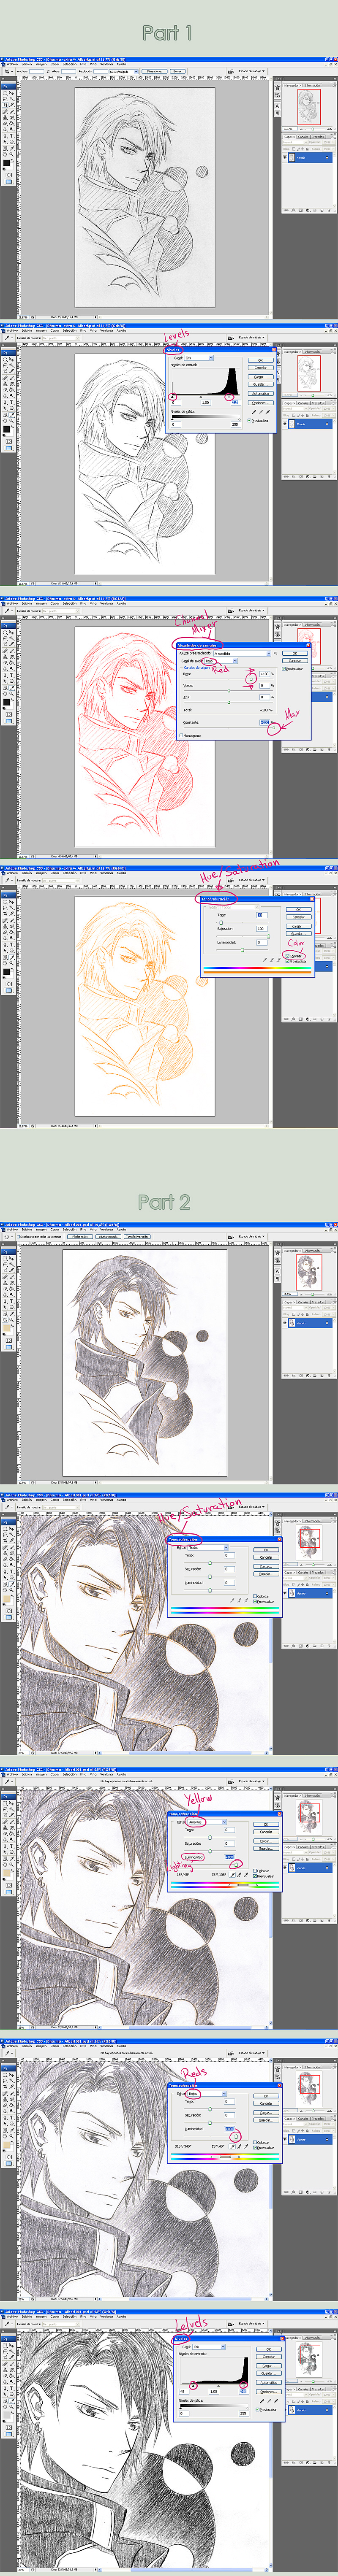 Tutorial: Cleaning sketches by Celsa